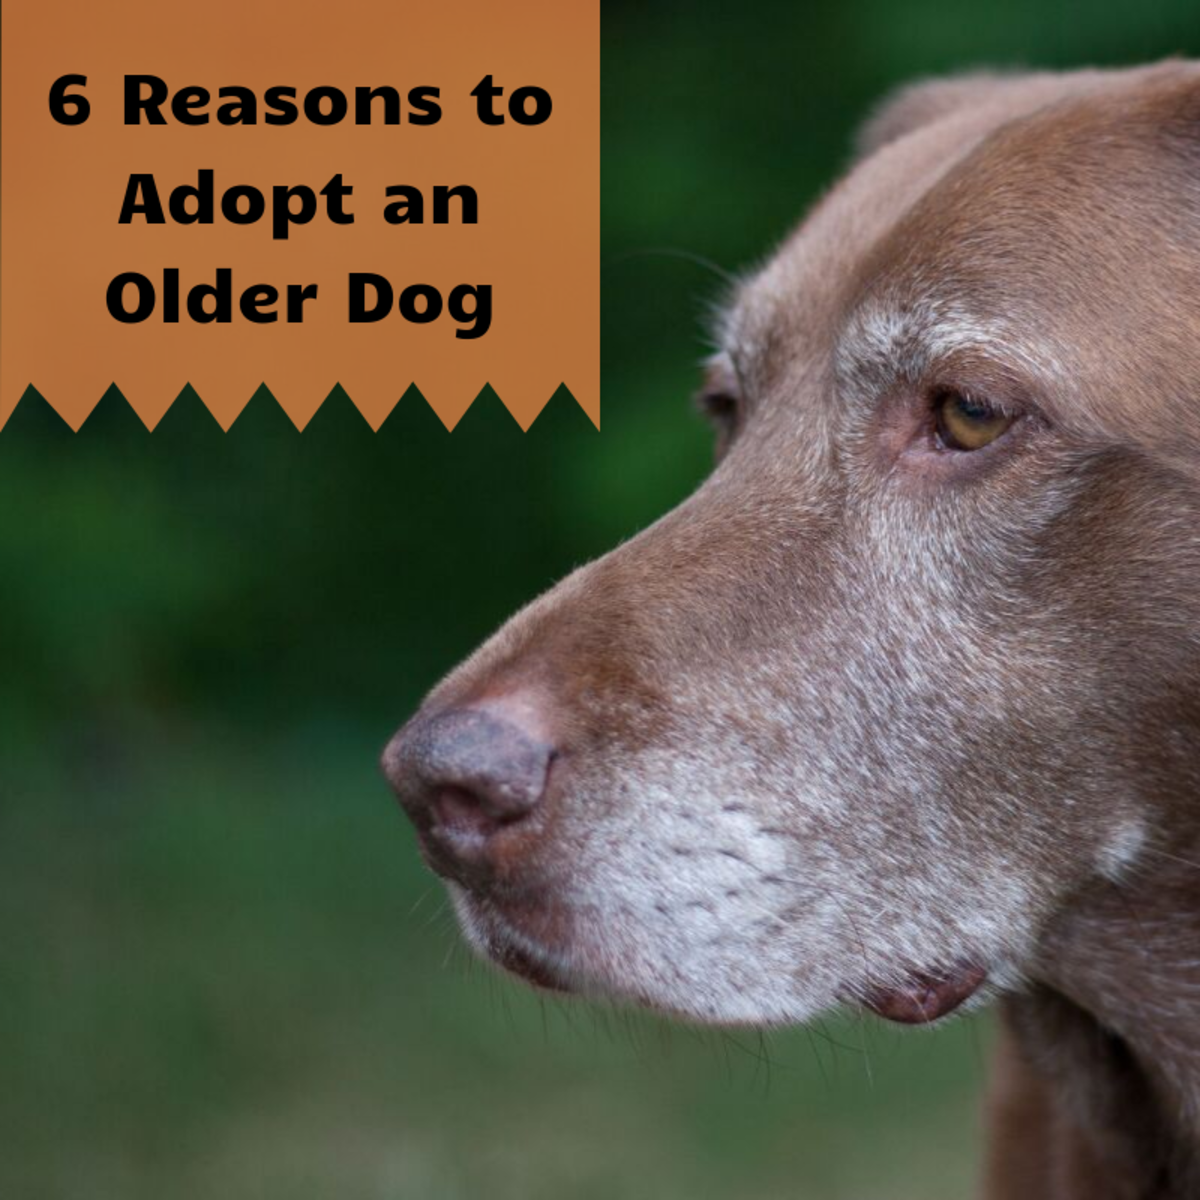 6 Reasons to Adopt an Older Dog